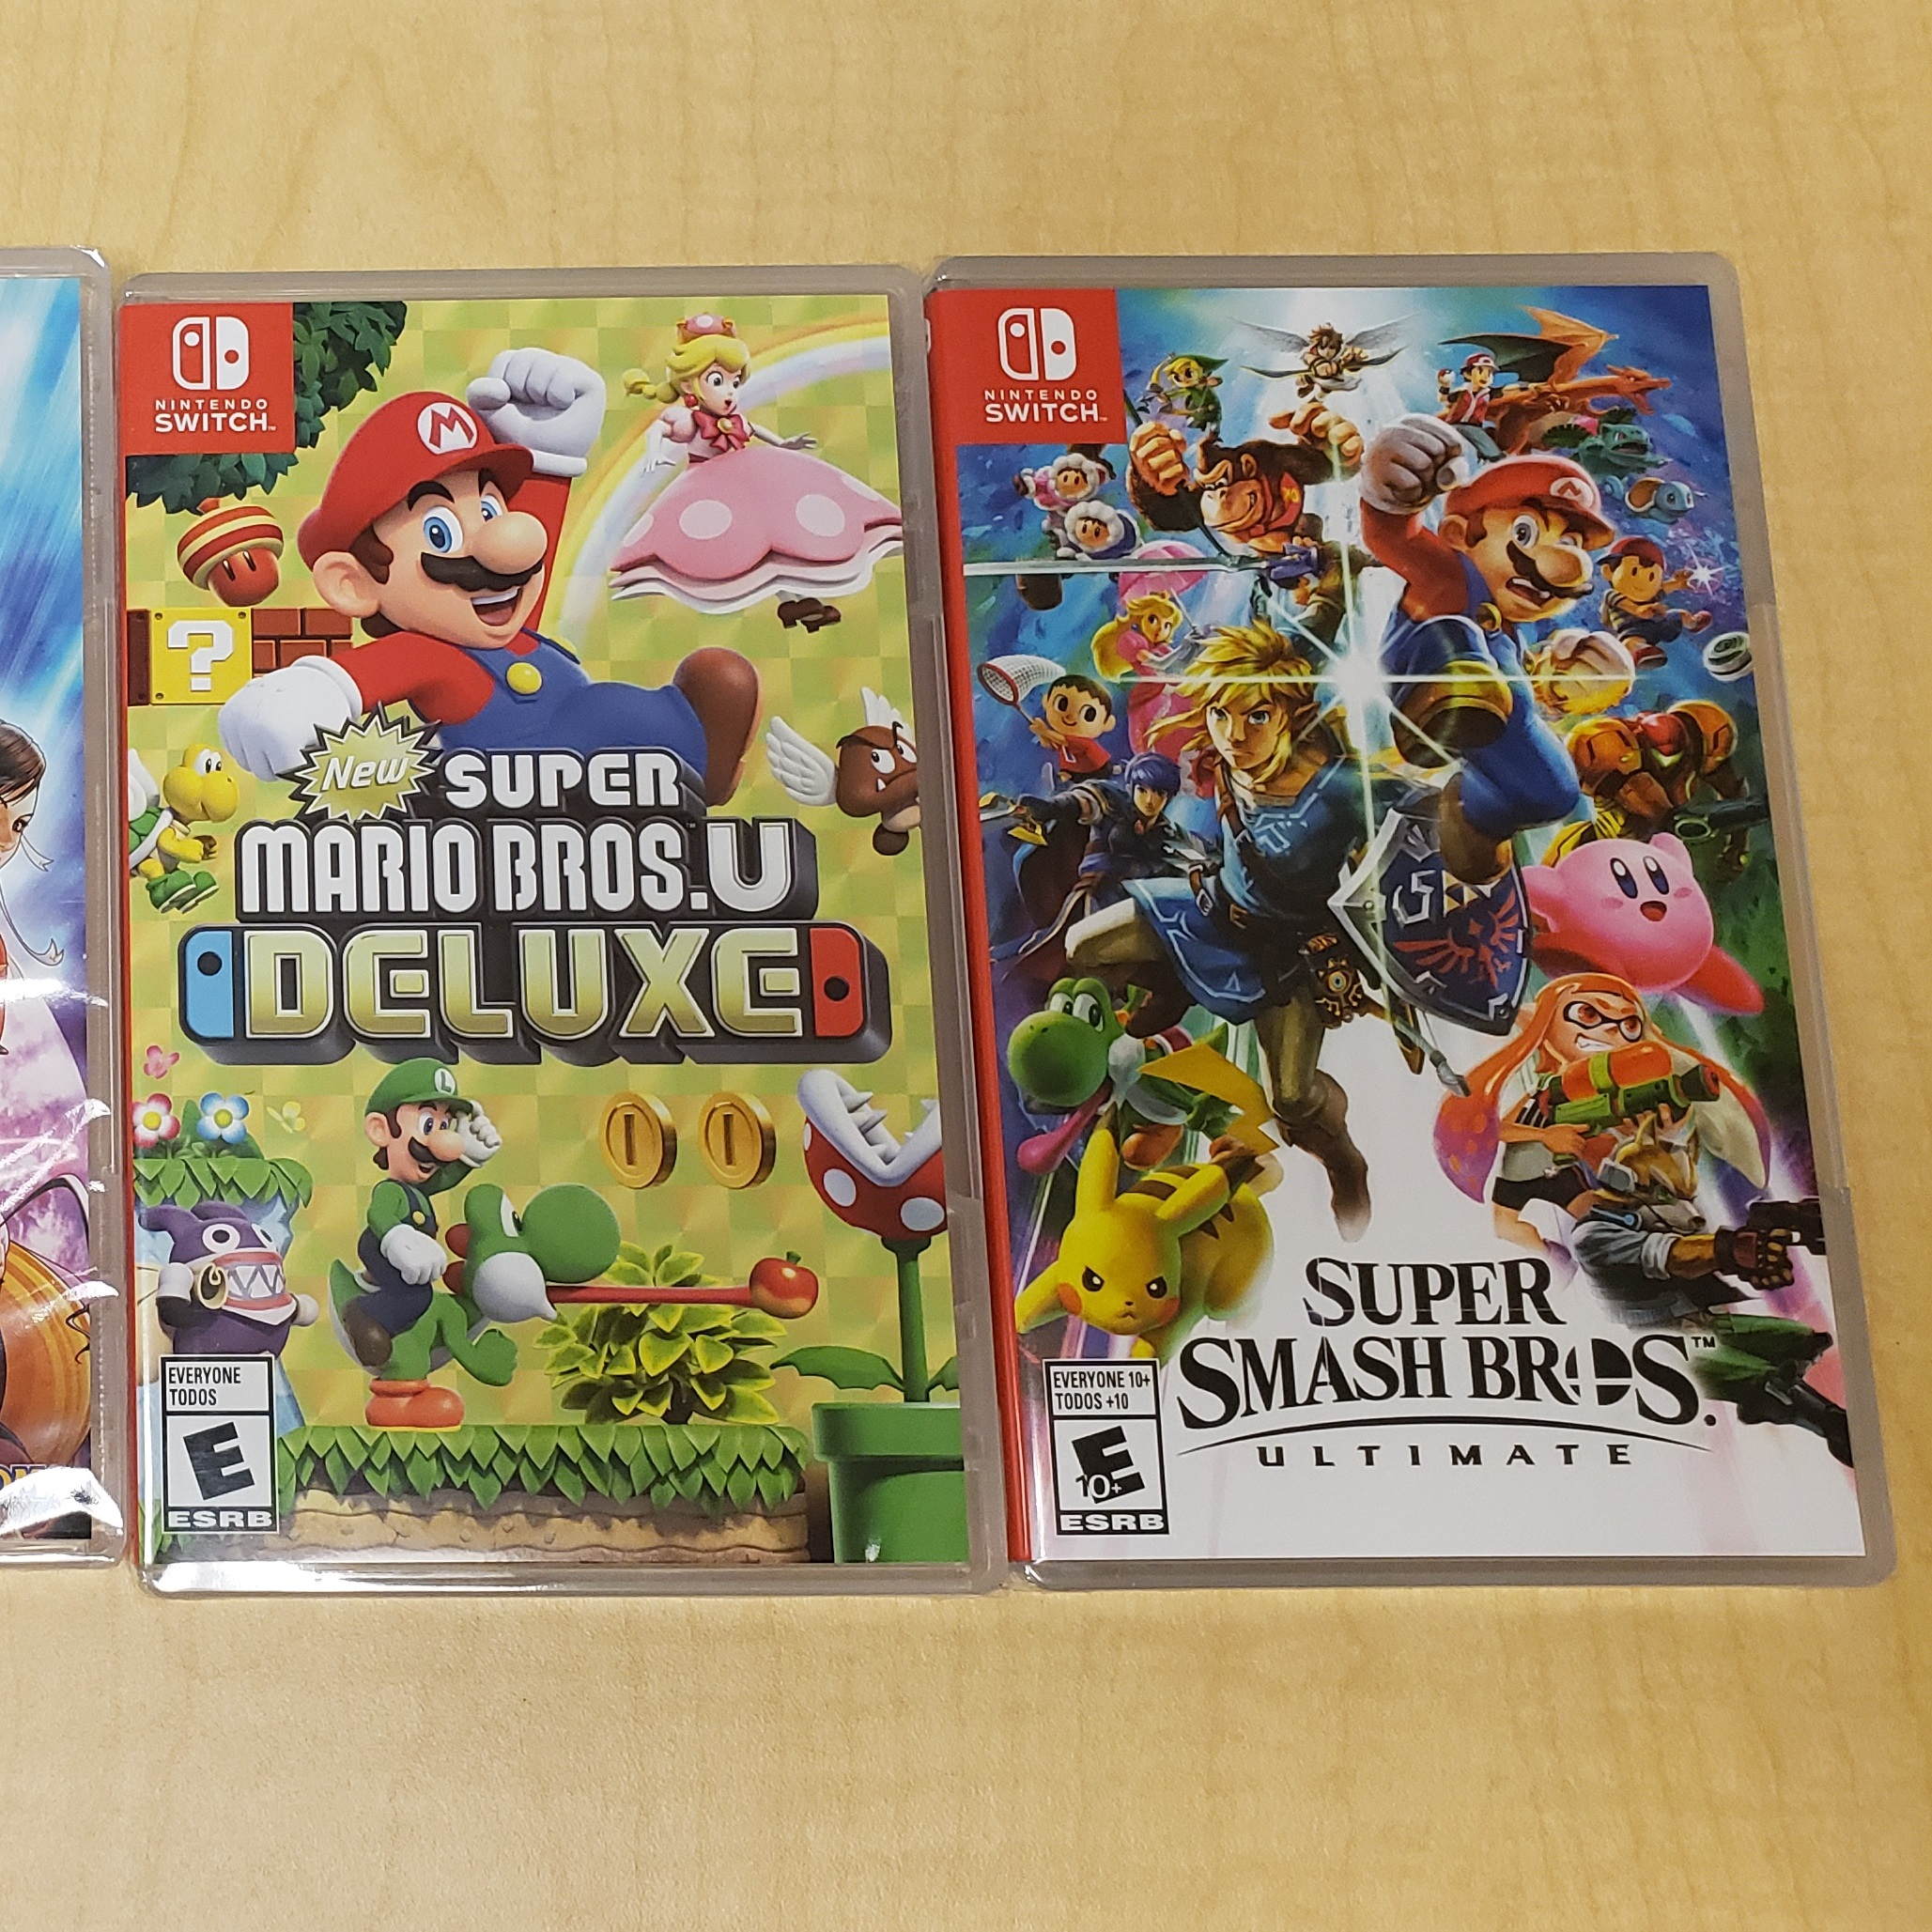 Nnitendo Switch games